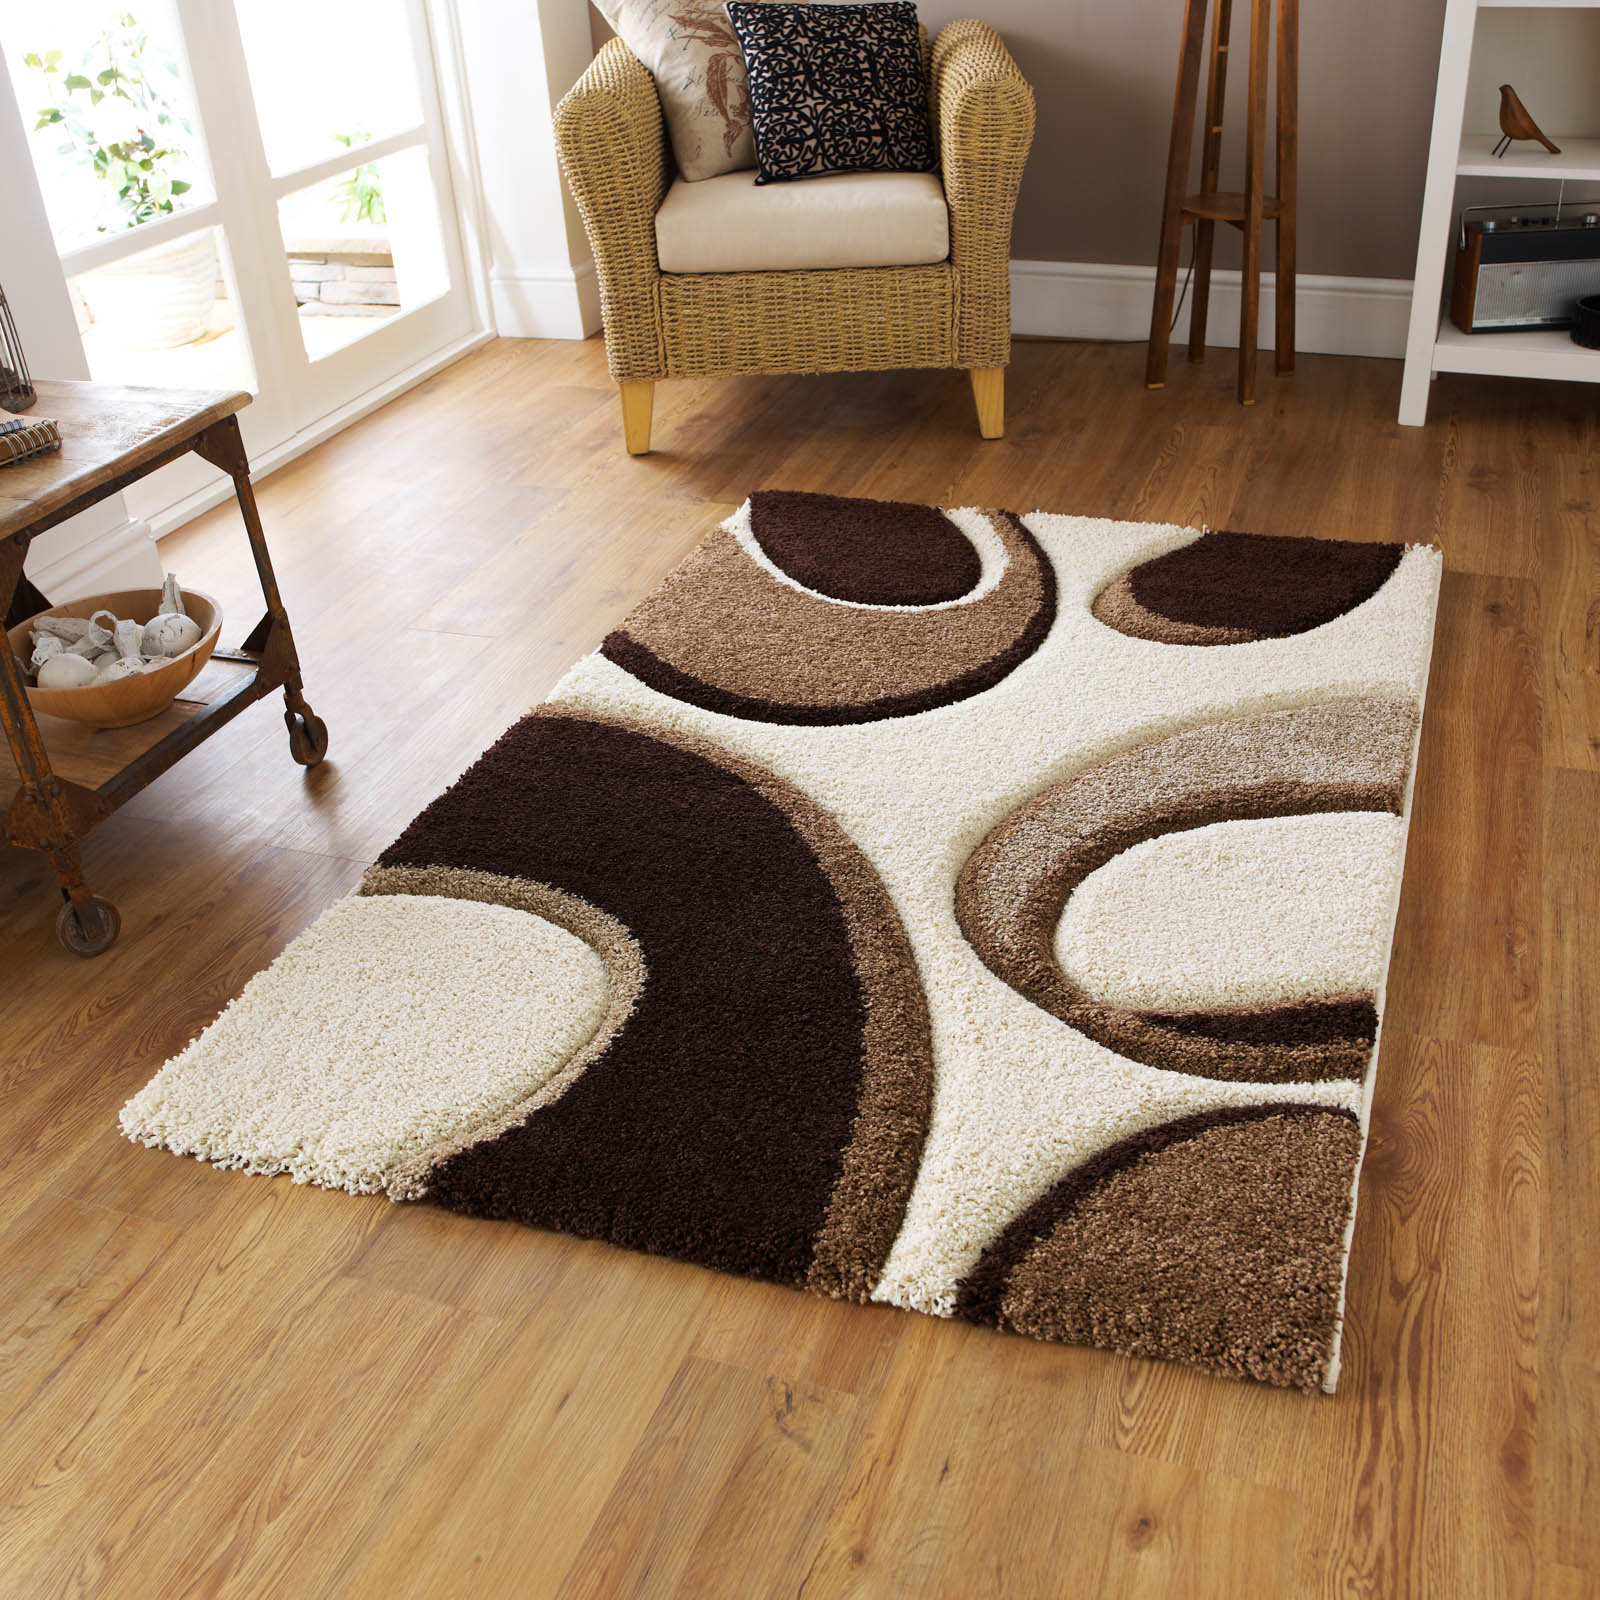 Fashion Carving 7648 rugs in Ivory Brown